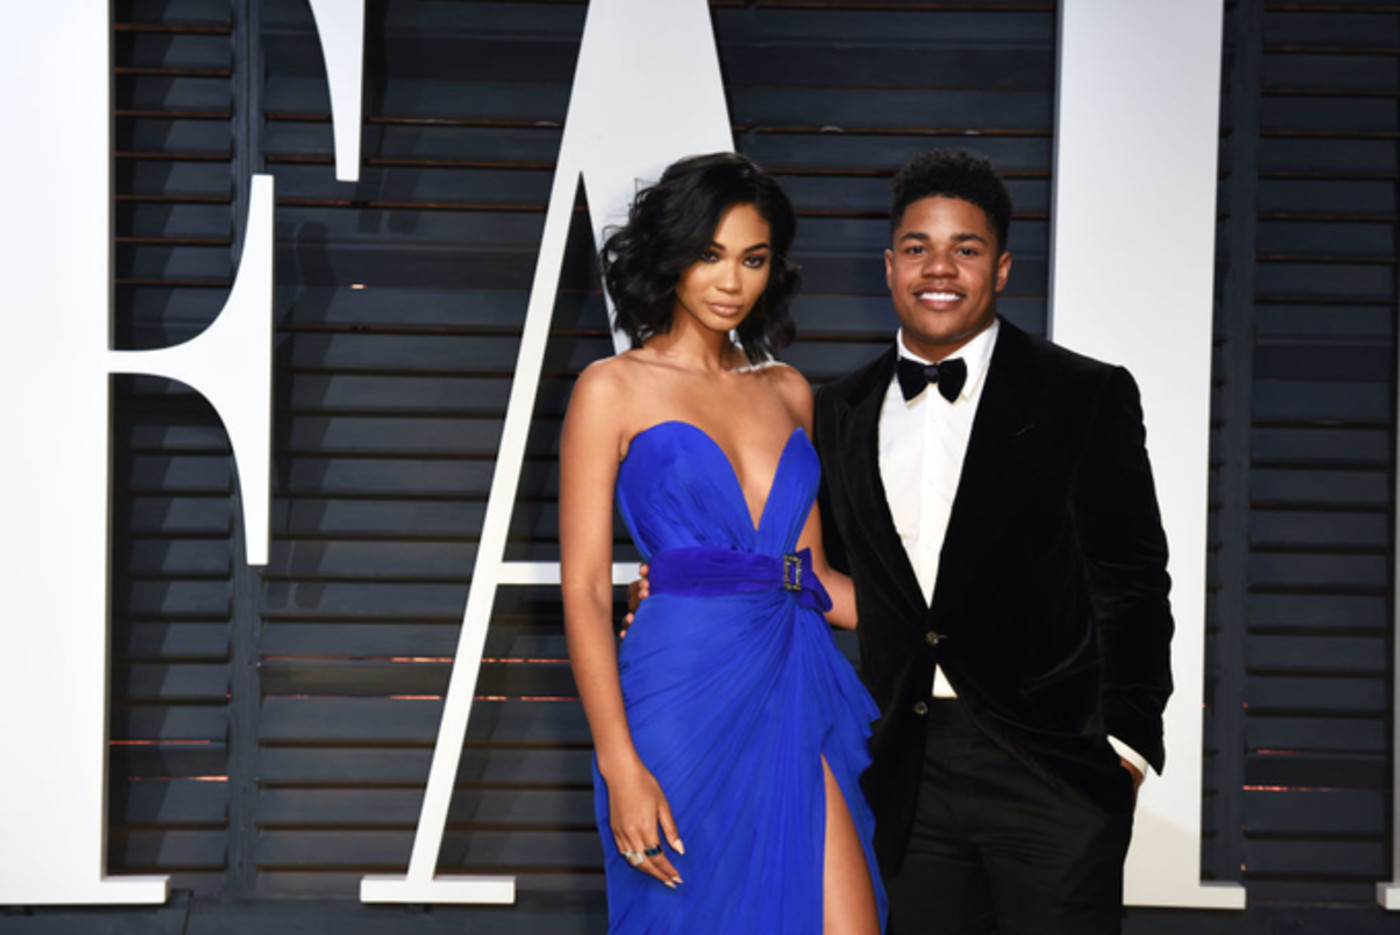 Chanel Iman and Sterling Shepard attend the 2017 Vanity Fair Oscar Party